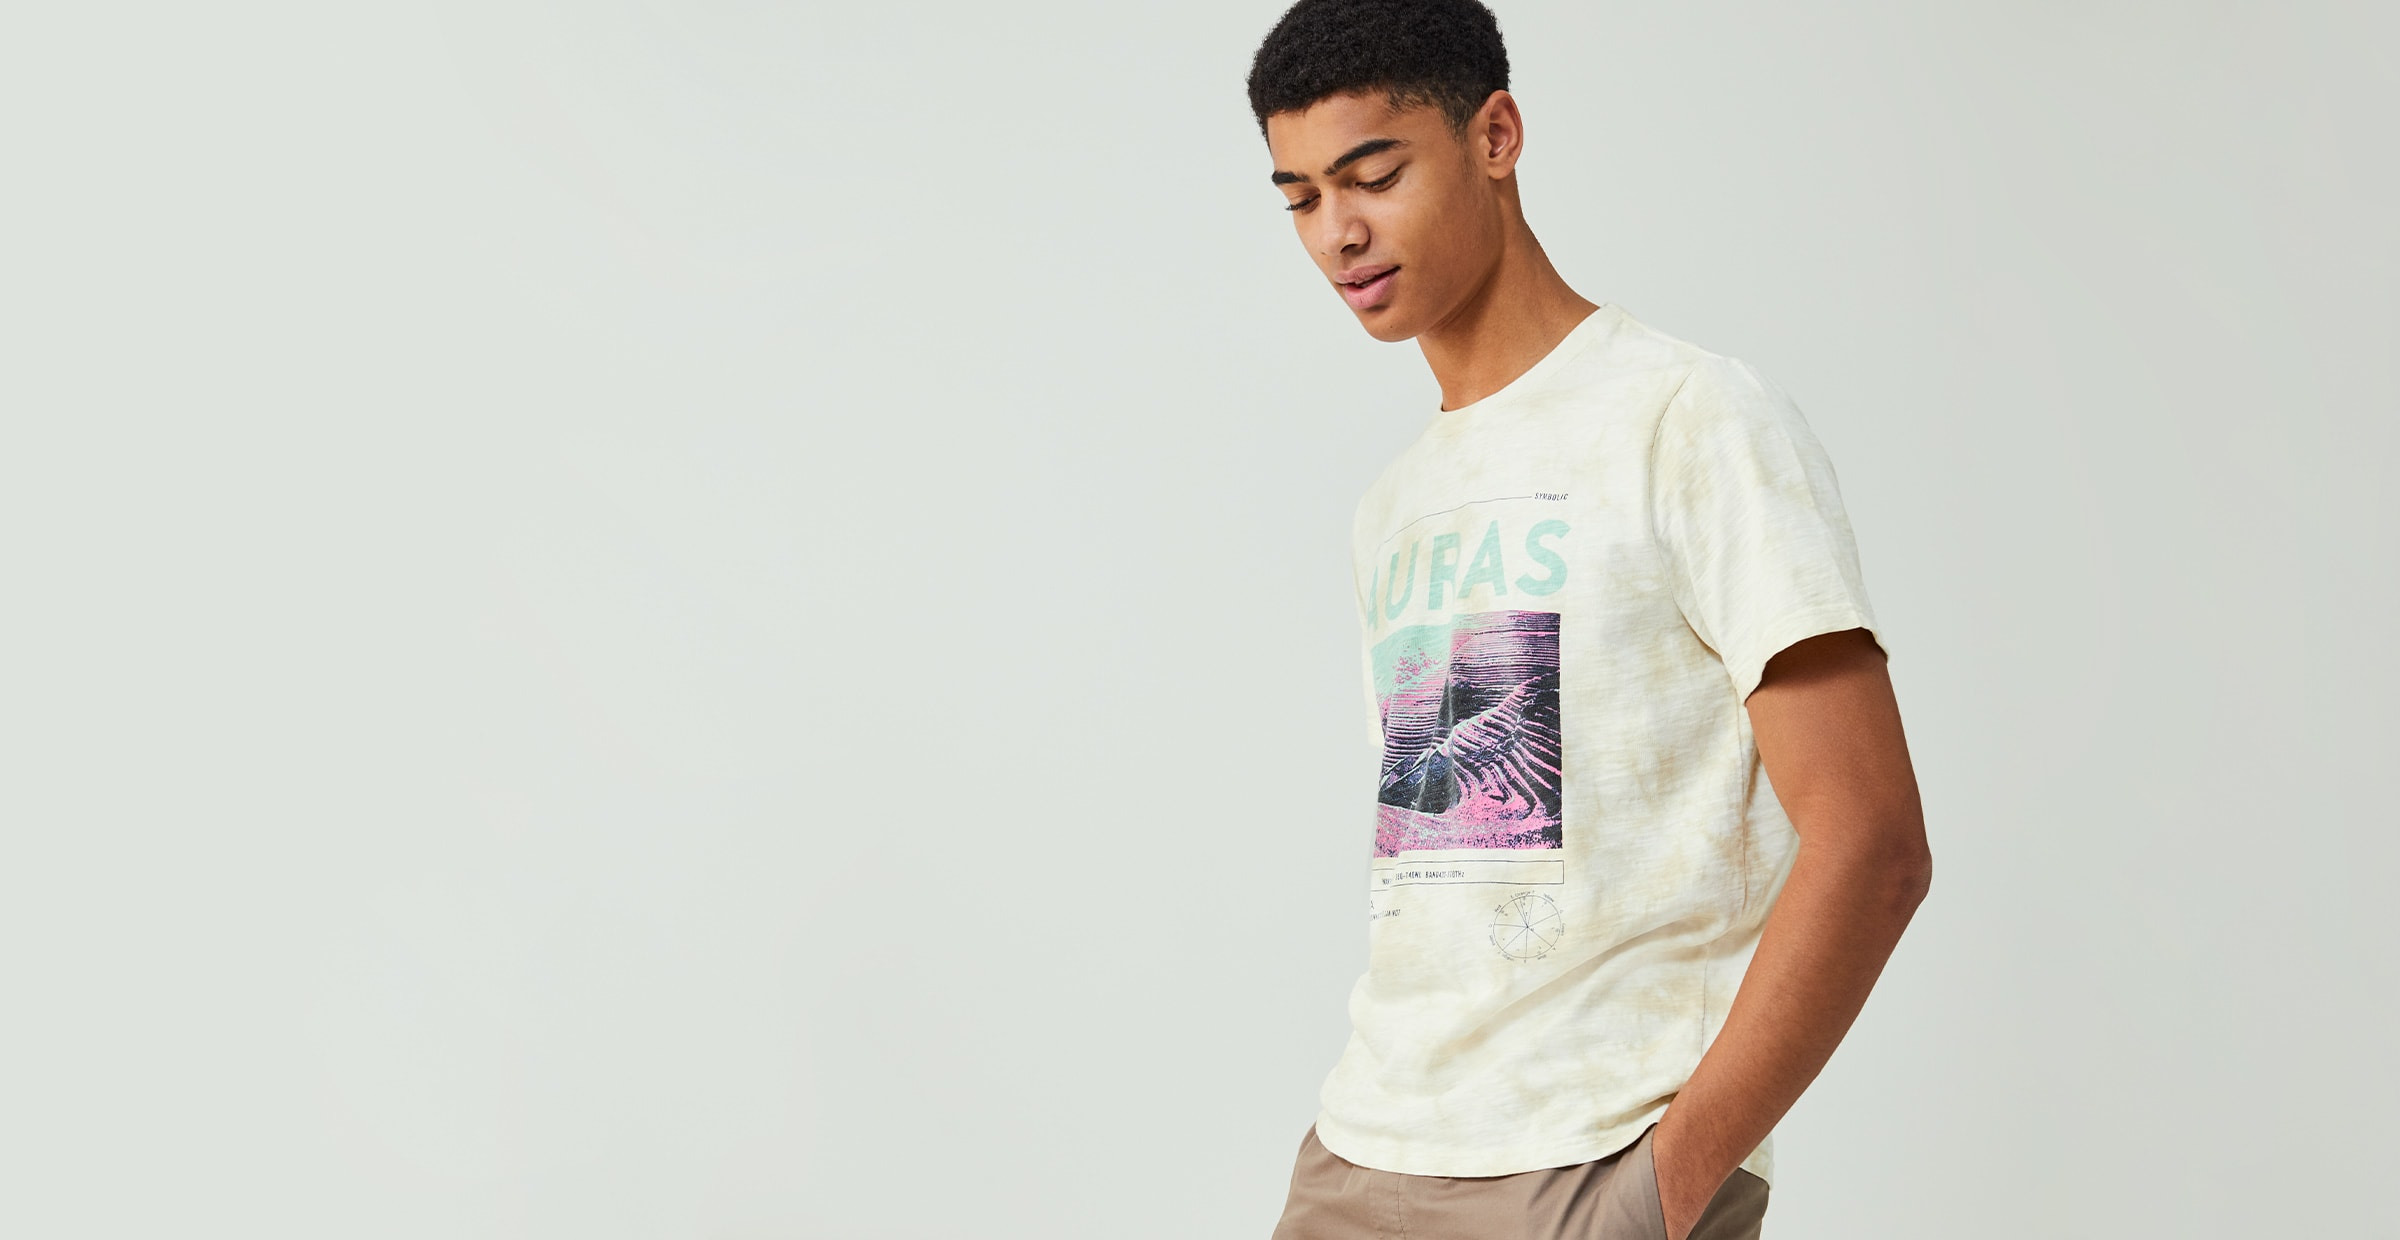 A man in a graphic tee